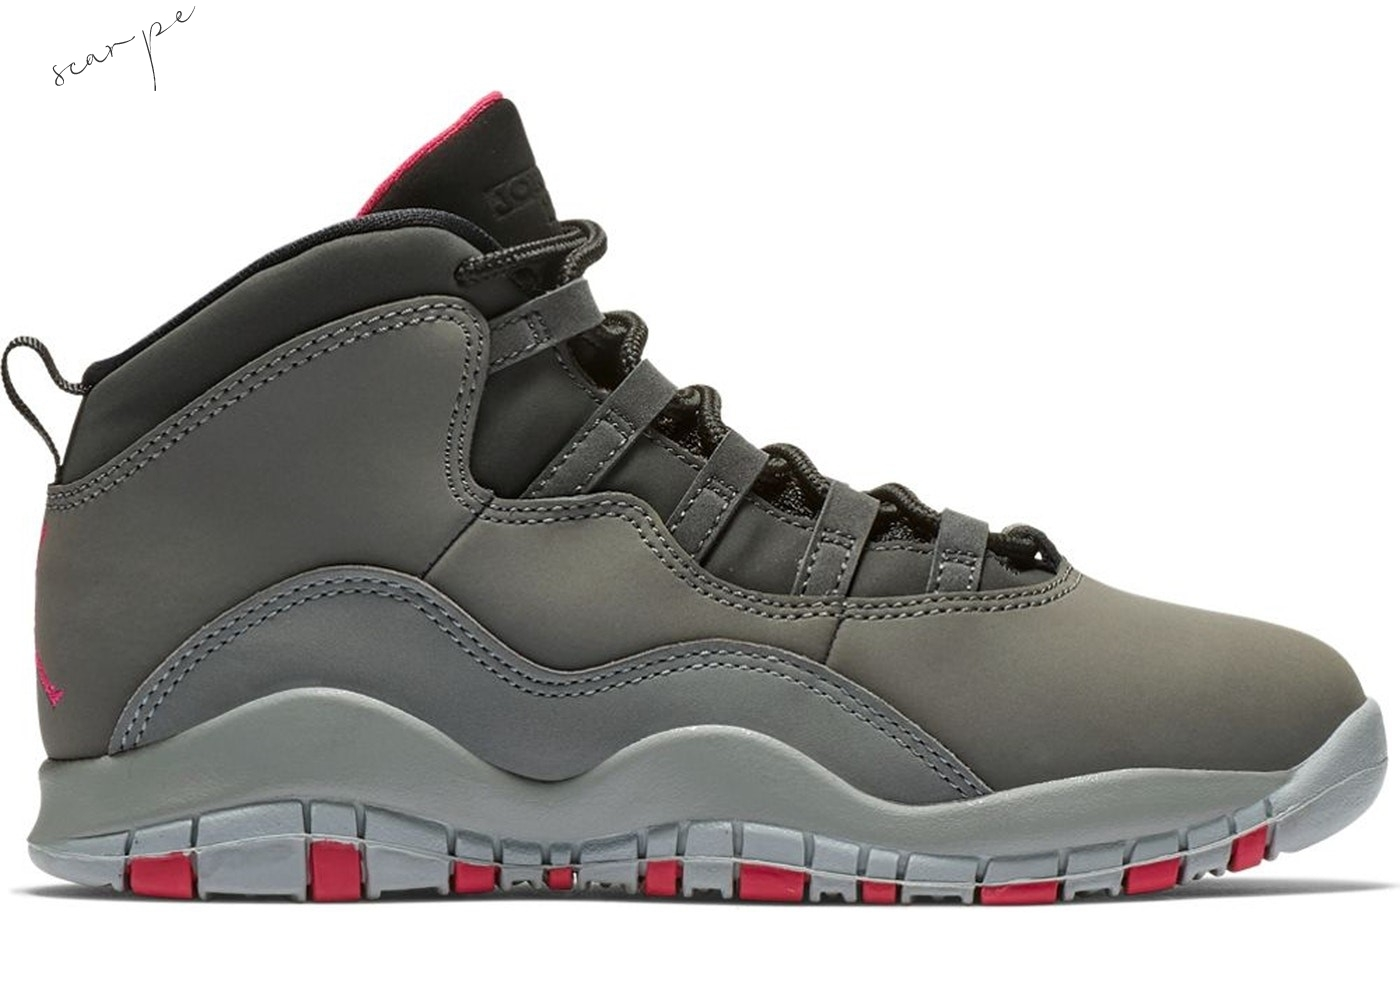 Vendite Air Jordan 10 Retro Rush Pink (Ps) Gris (487212-006) Scarpe Online